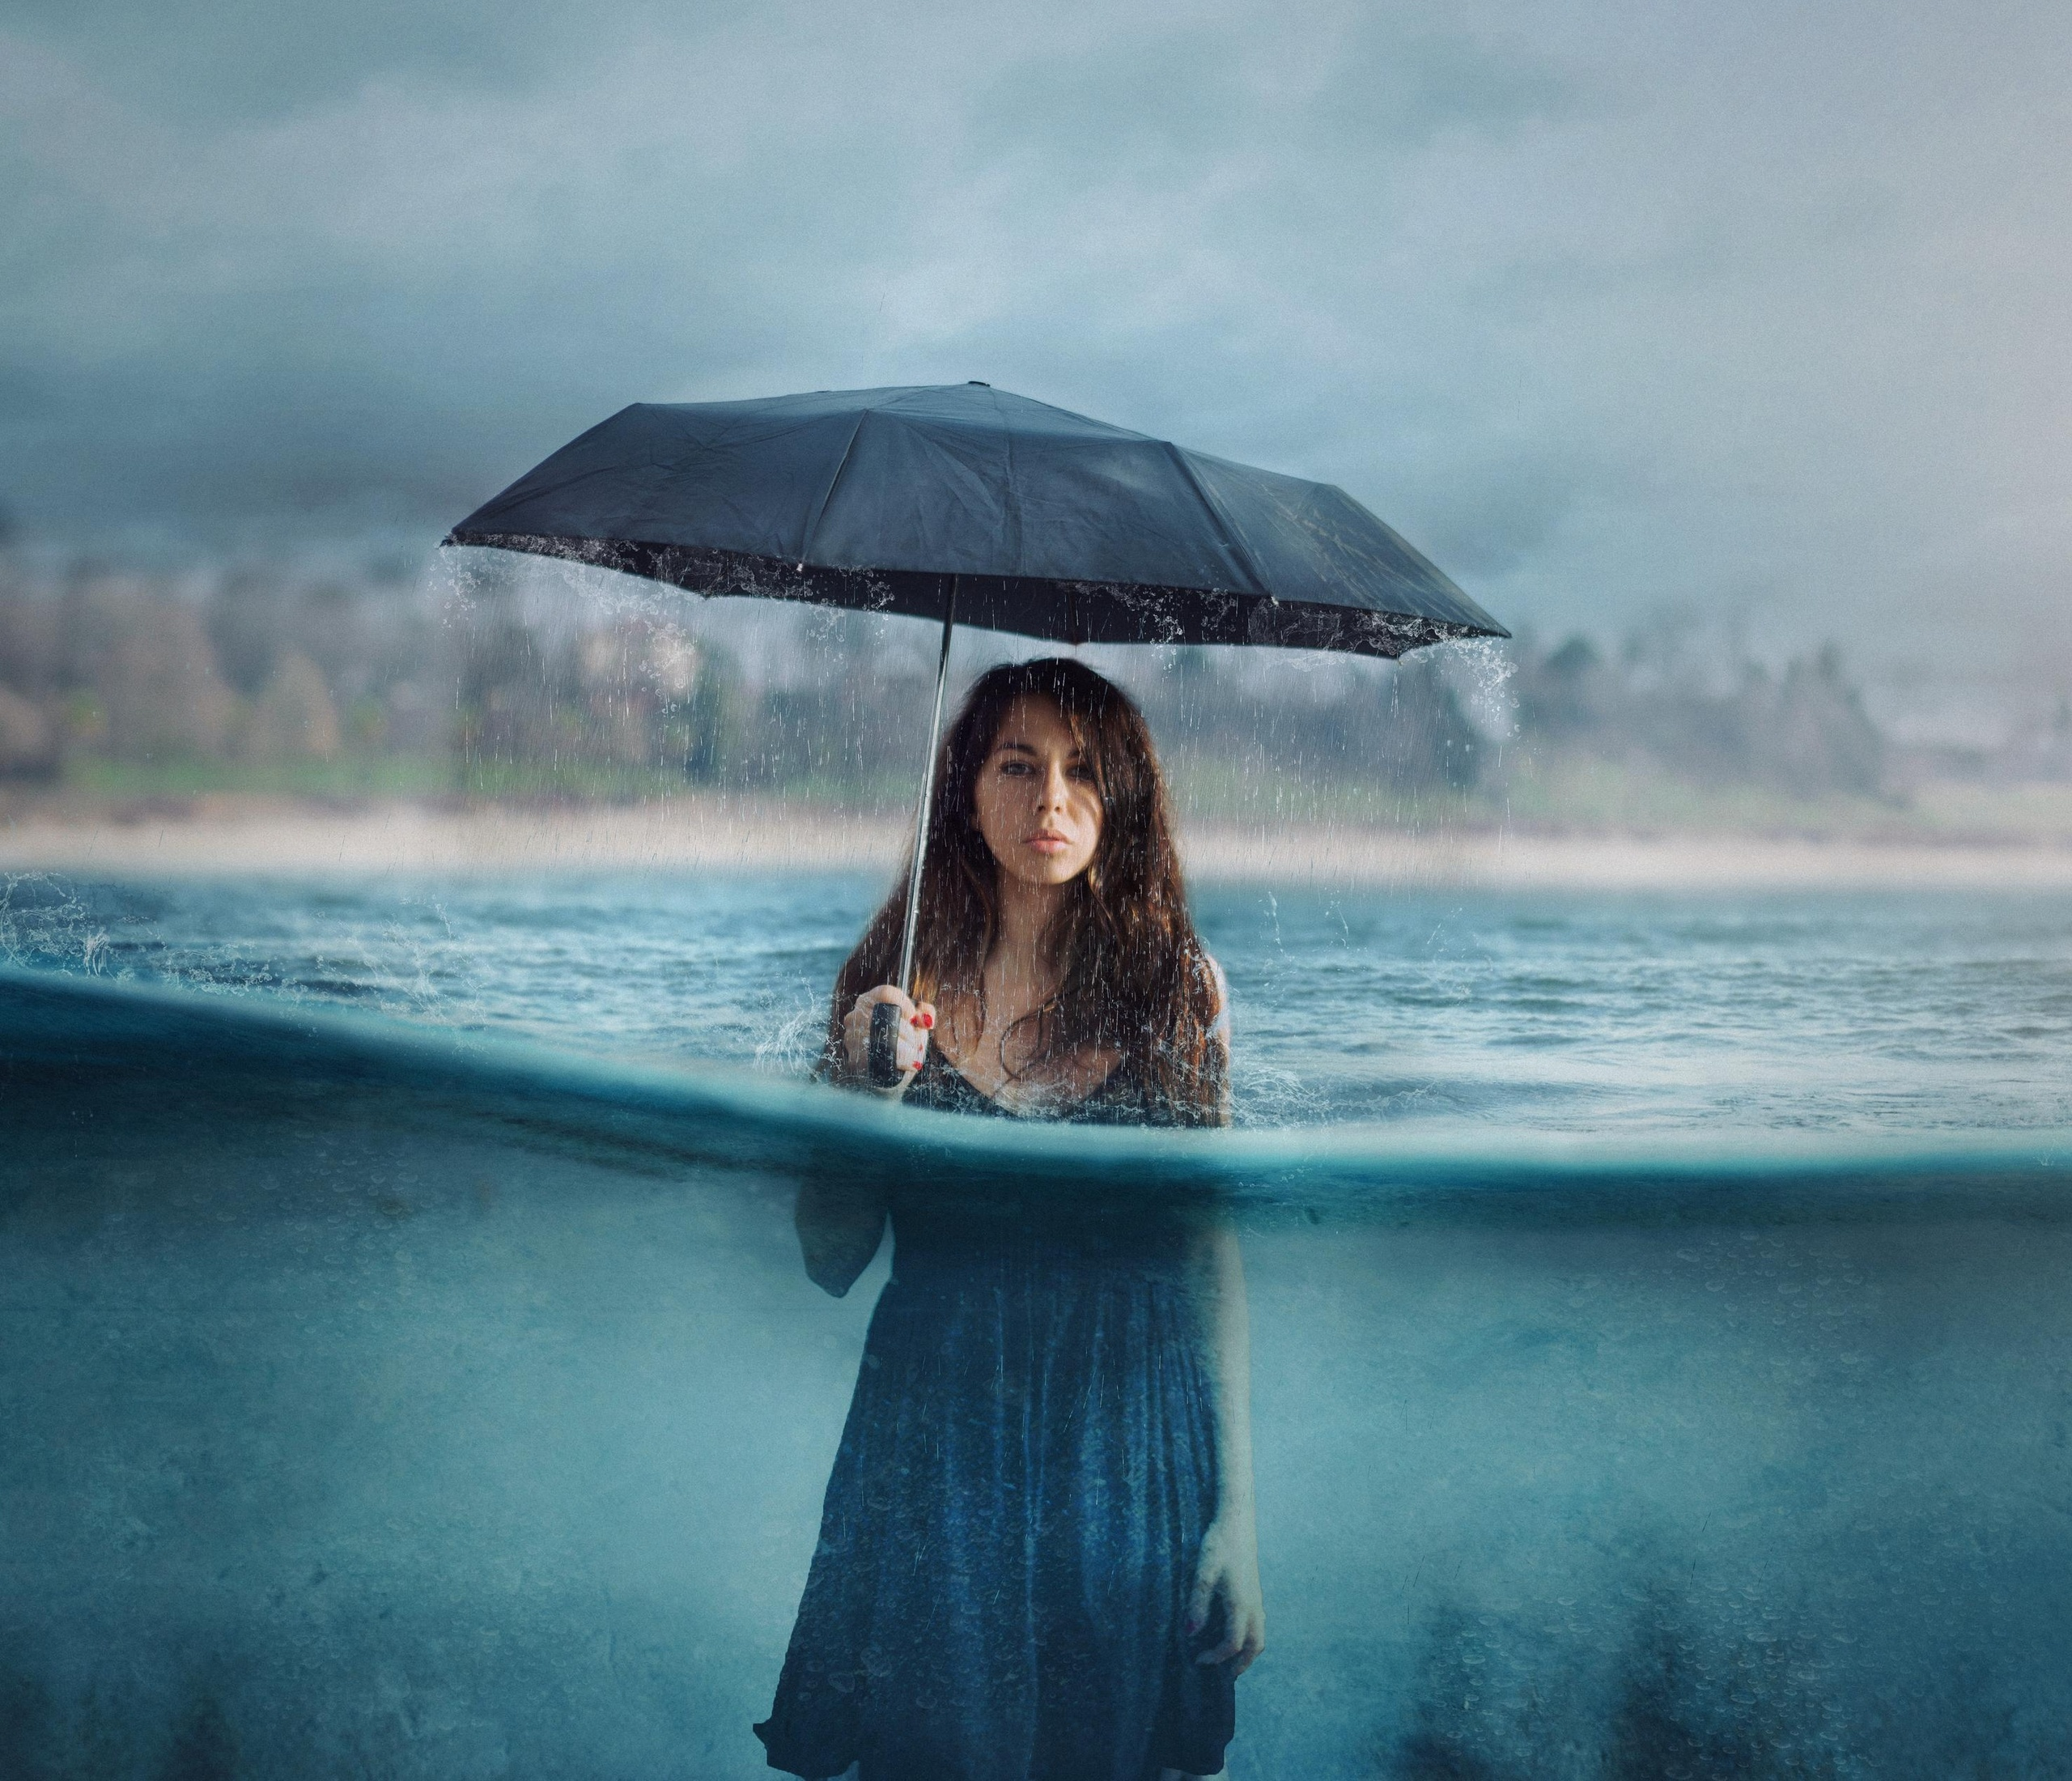 Photography Manipulation Umbrella Girl Women Rain, HD